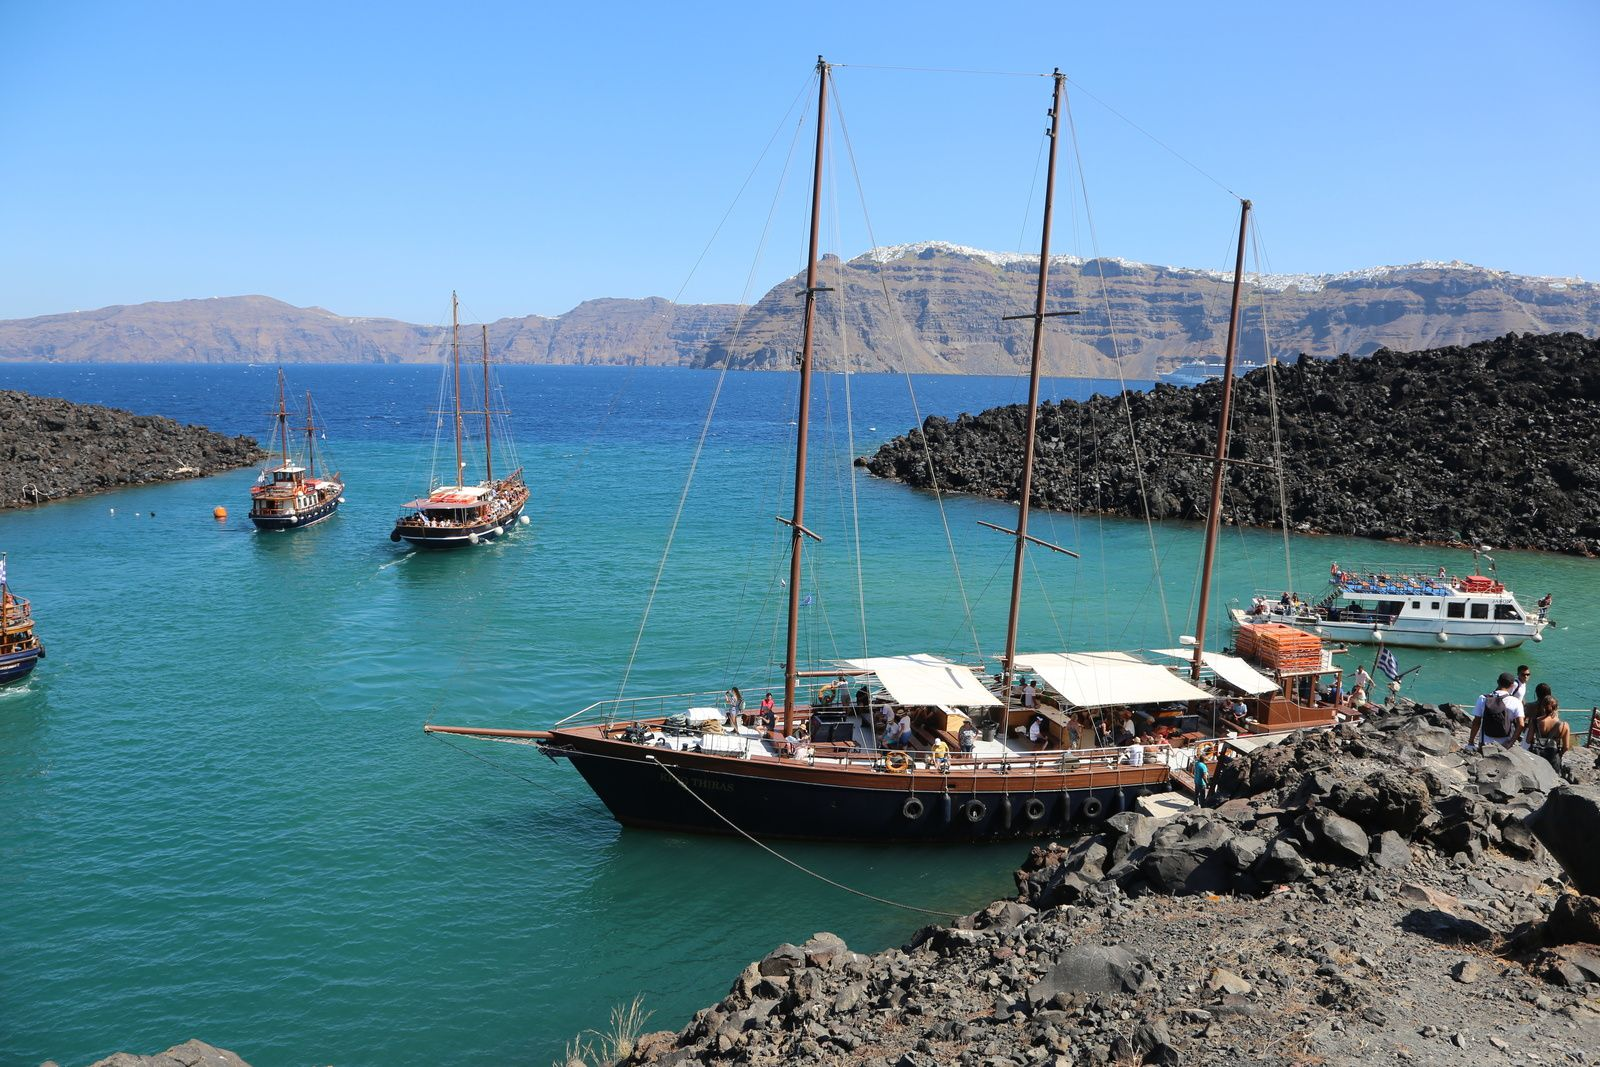 Santorini - docking on Néa Kameni between the lava flows ; in the background, the edge of the caldera, and the city of Fira - photo © Bernard Duyck 2019